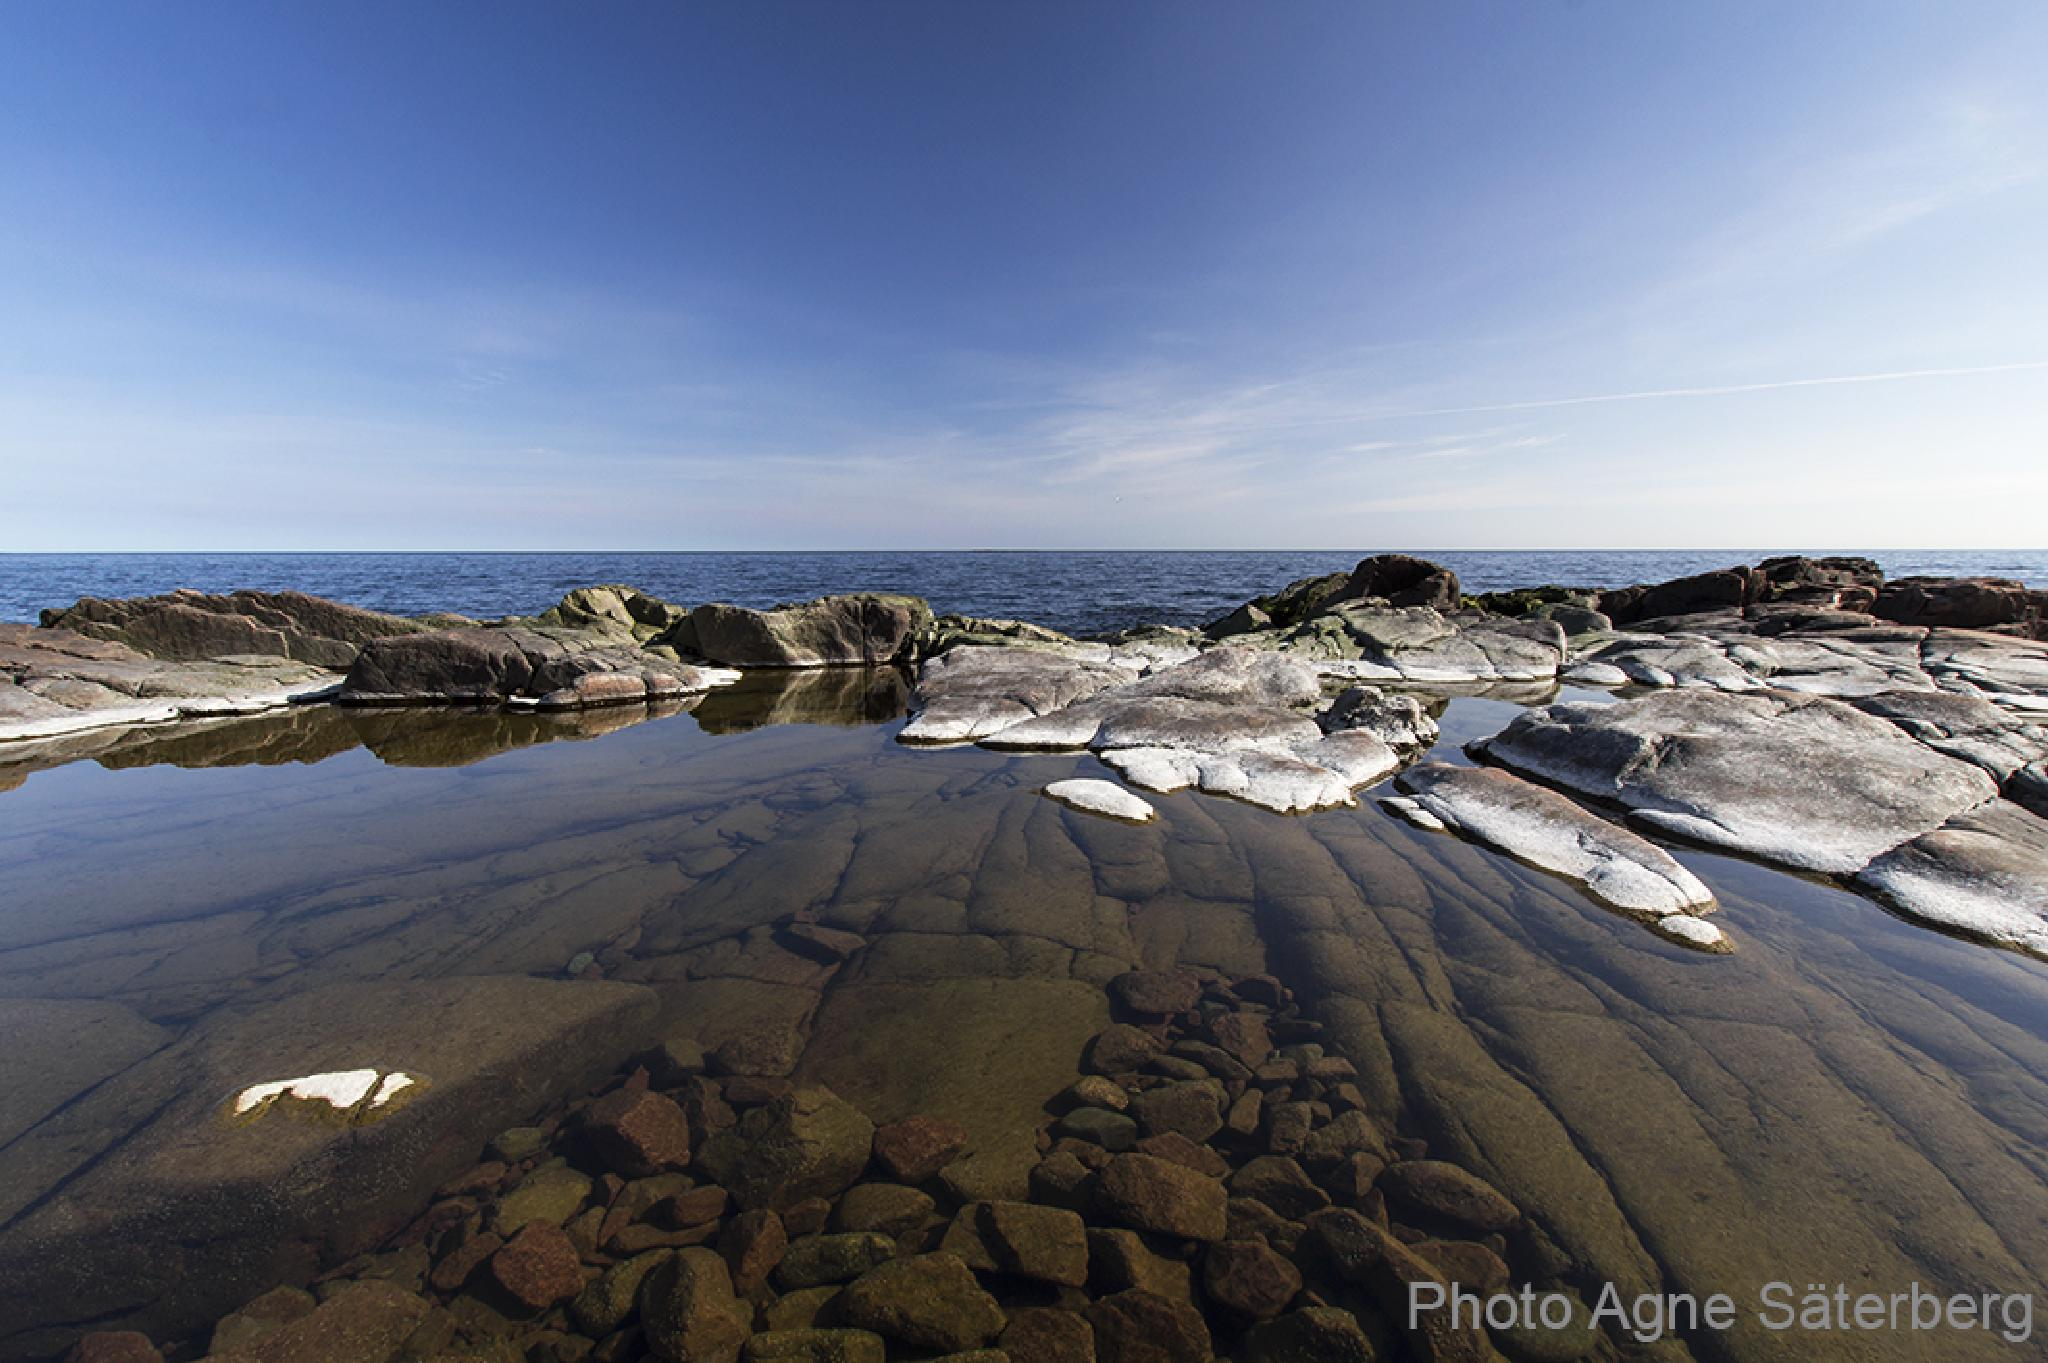 Gorgeous spring days in Nordingrå, the High Coast! by Agne Säterberg